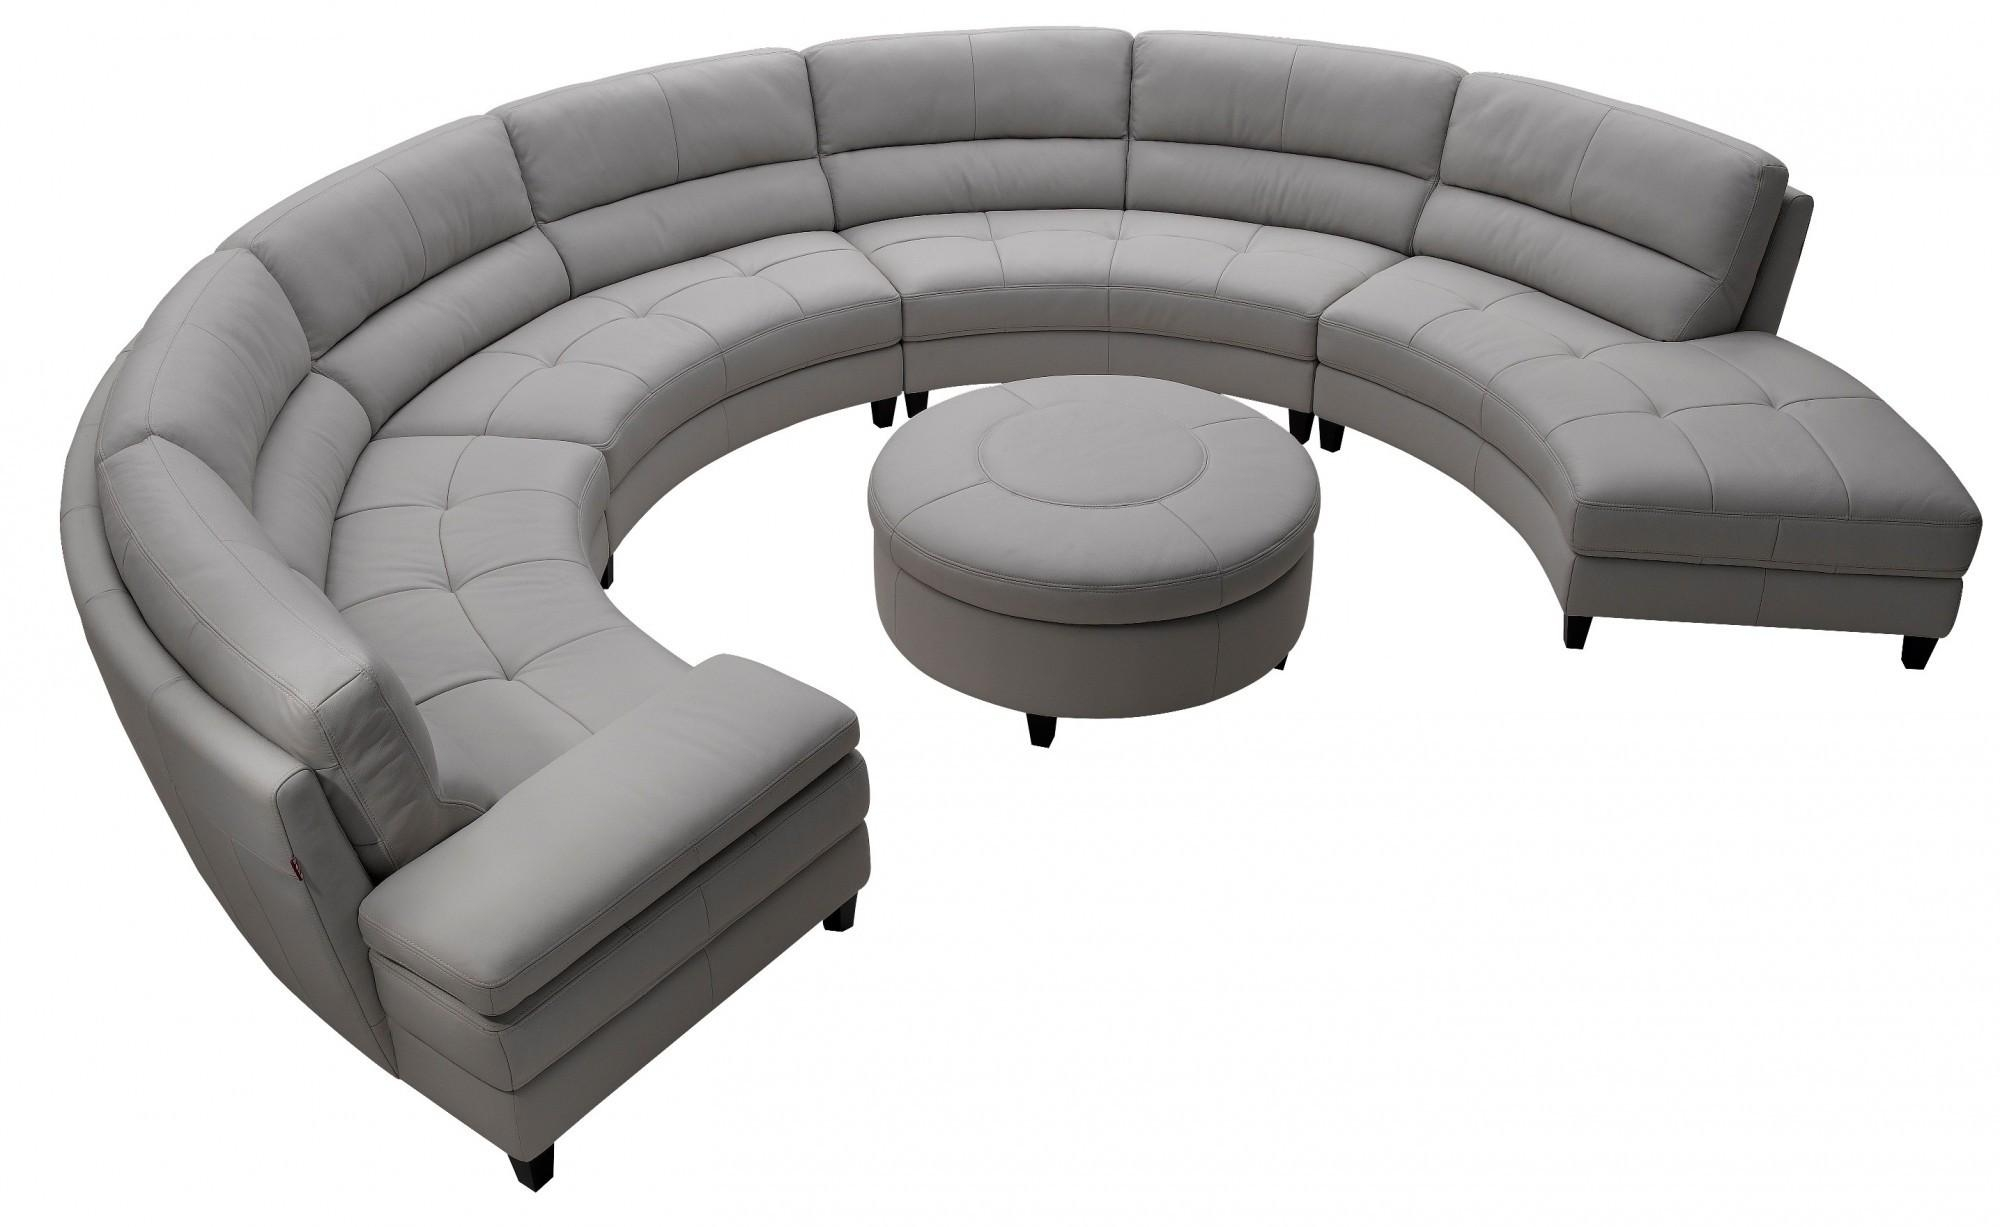 Furniture: Couch Sectional | Sofa With Chaise Lounge | Round Couches With Regard To Round Sofas (View 19 of 20)